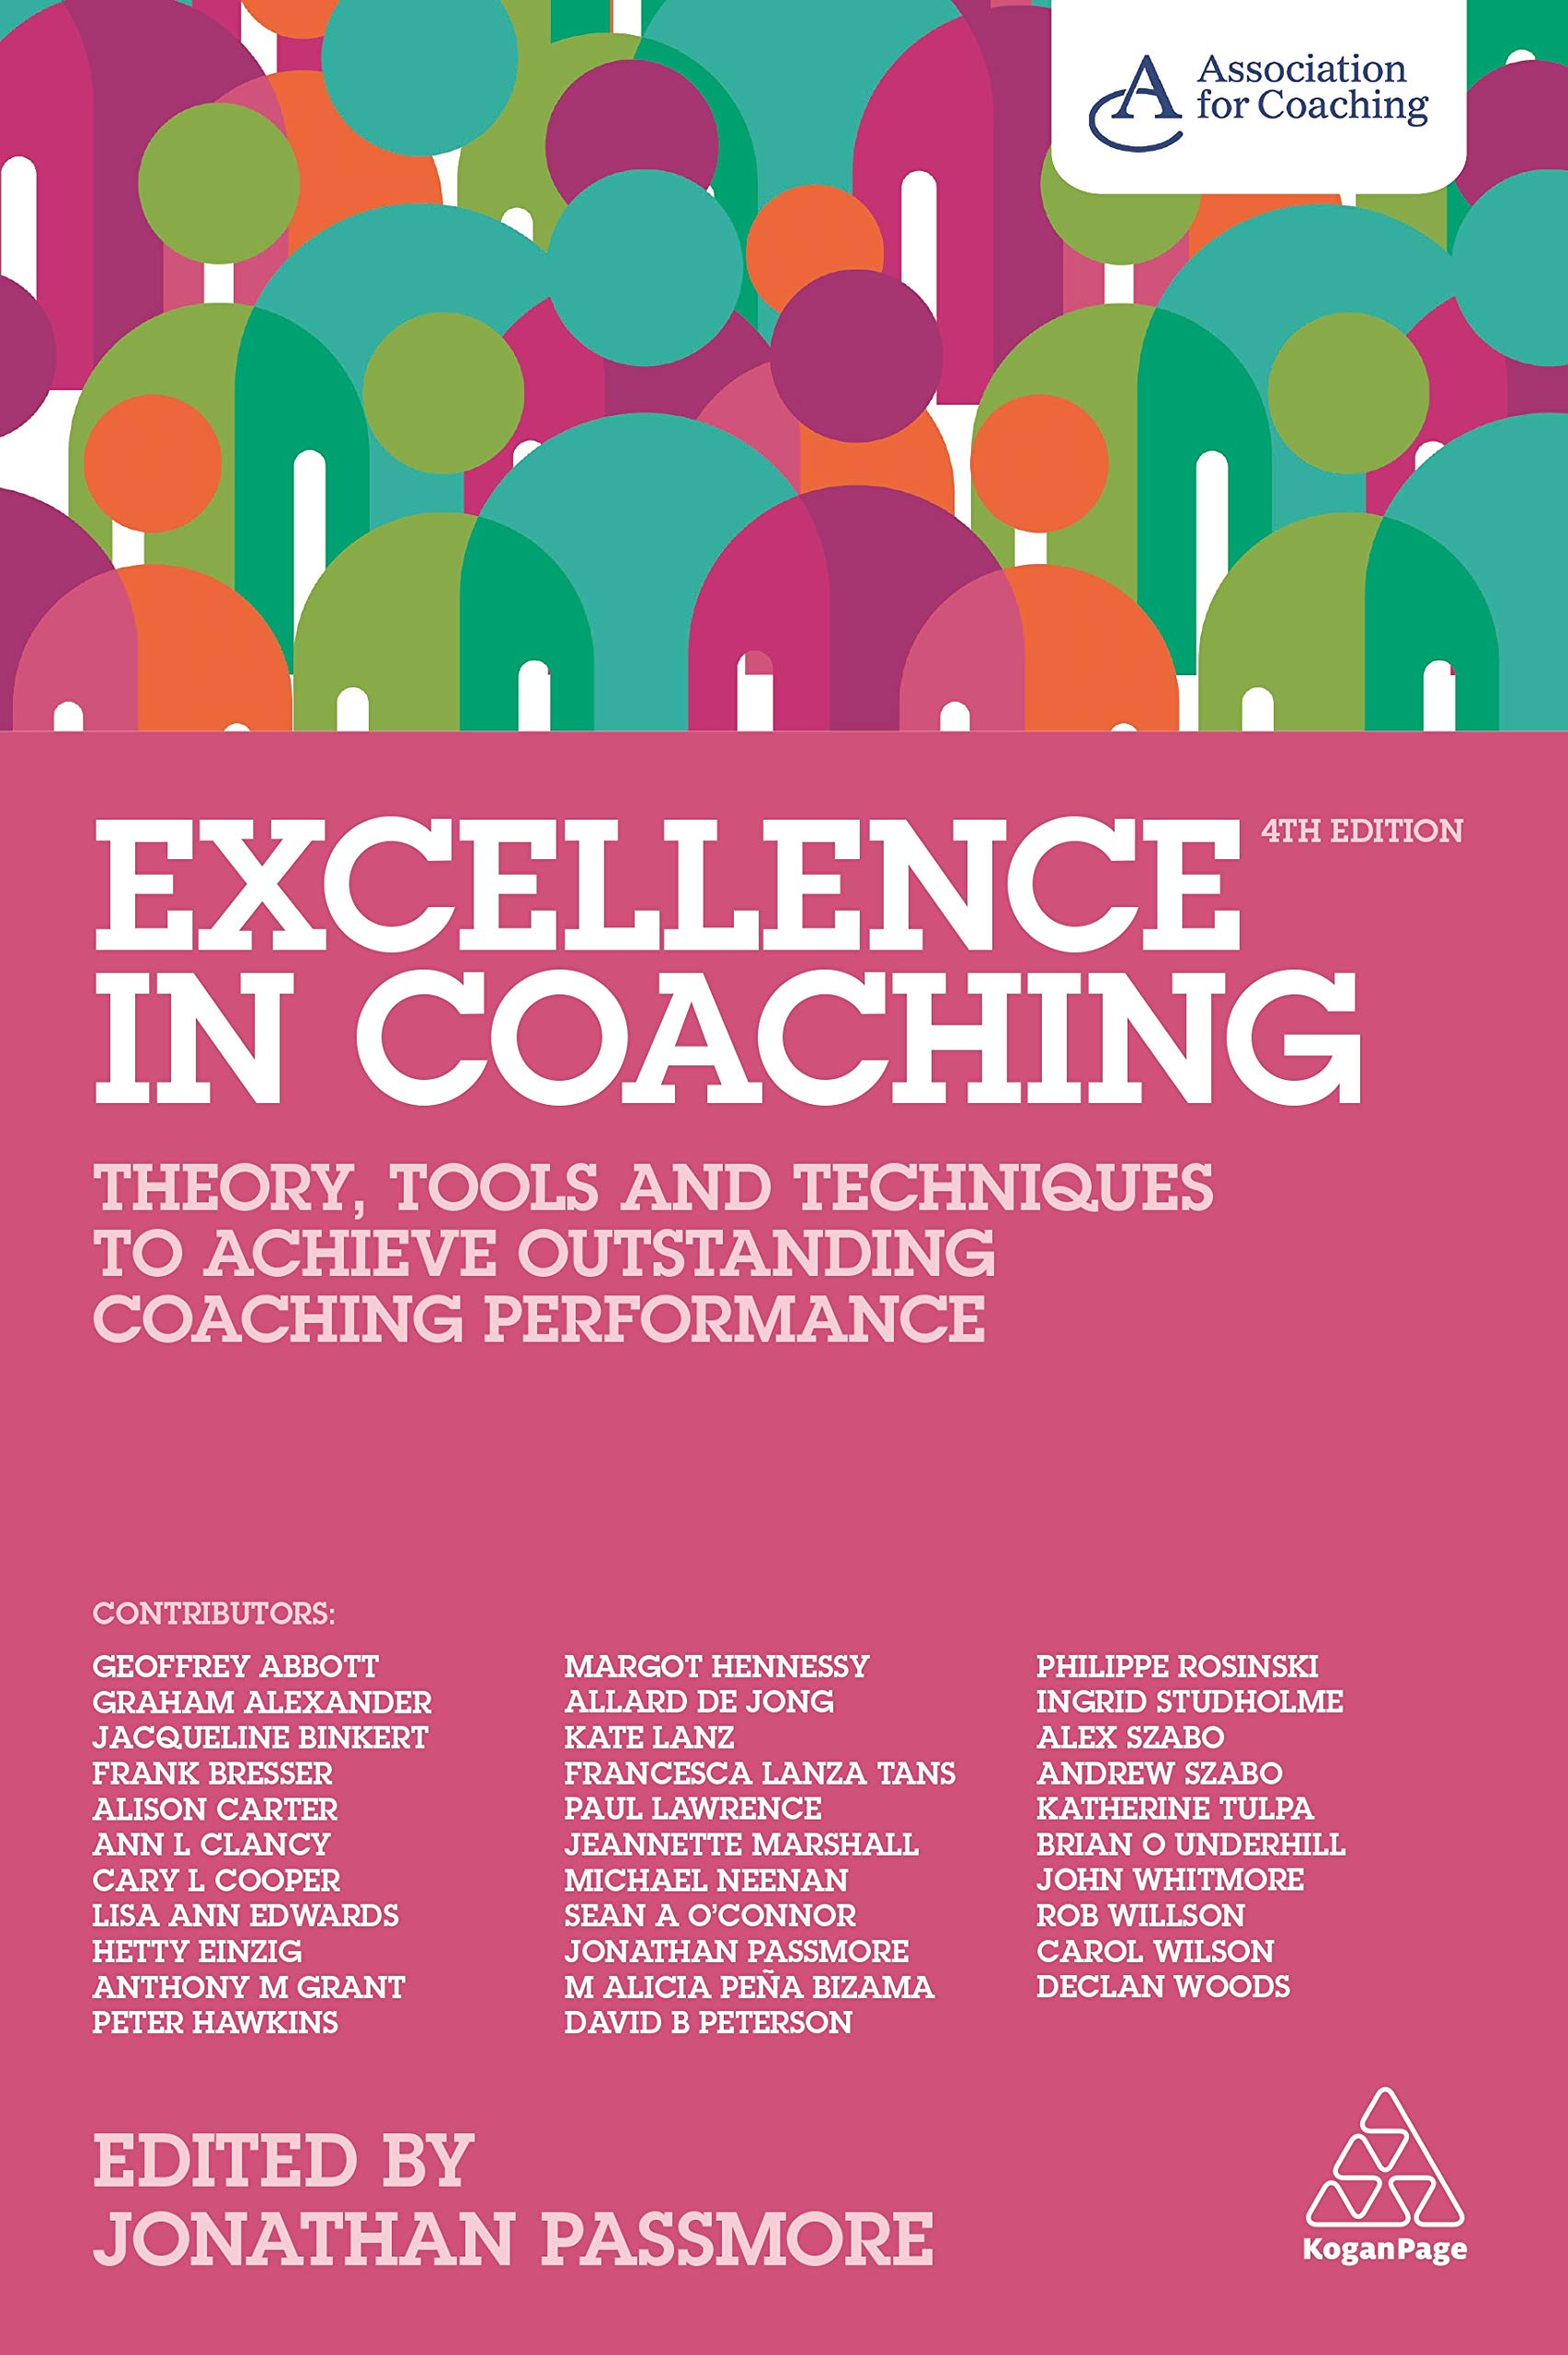 Excellence in Coaching: Theory, Tools and Techniques to Achieve Outstanding Coaching Performance